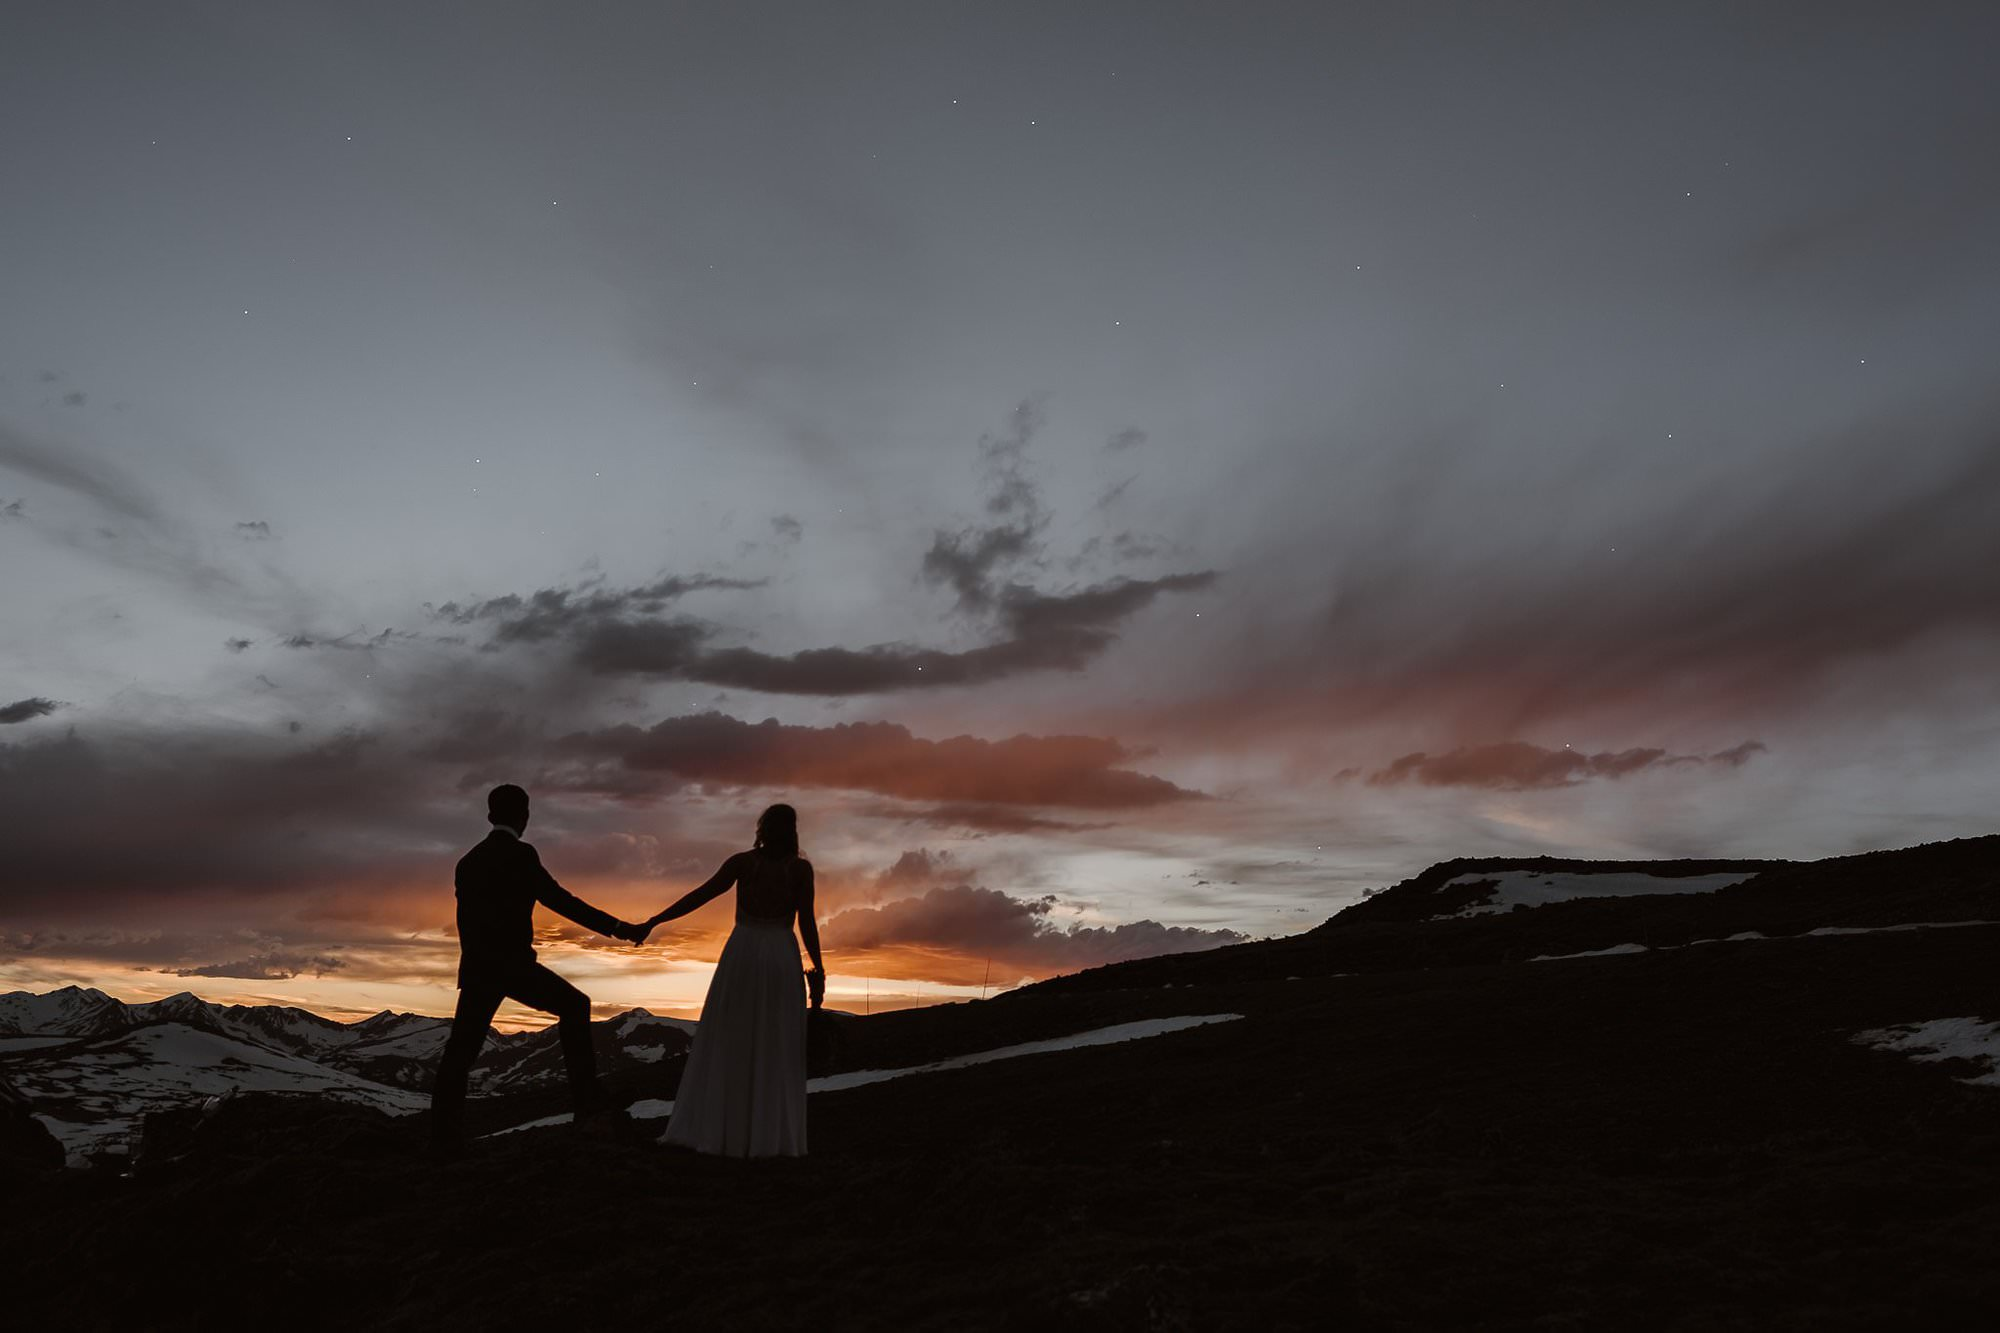 colorado-adventure-elopement-photographer-adventure-weddings-rocky-mountain-adventures-justyna-e-butler